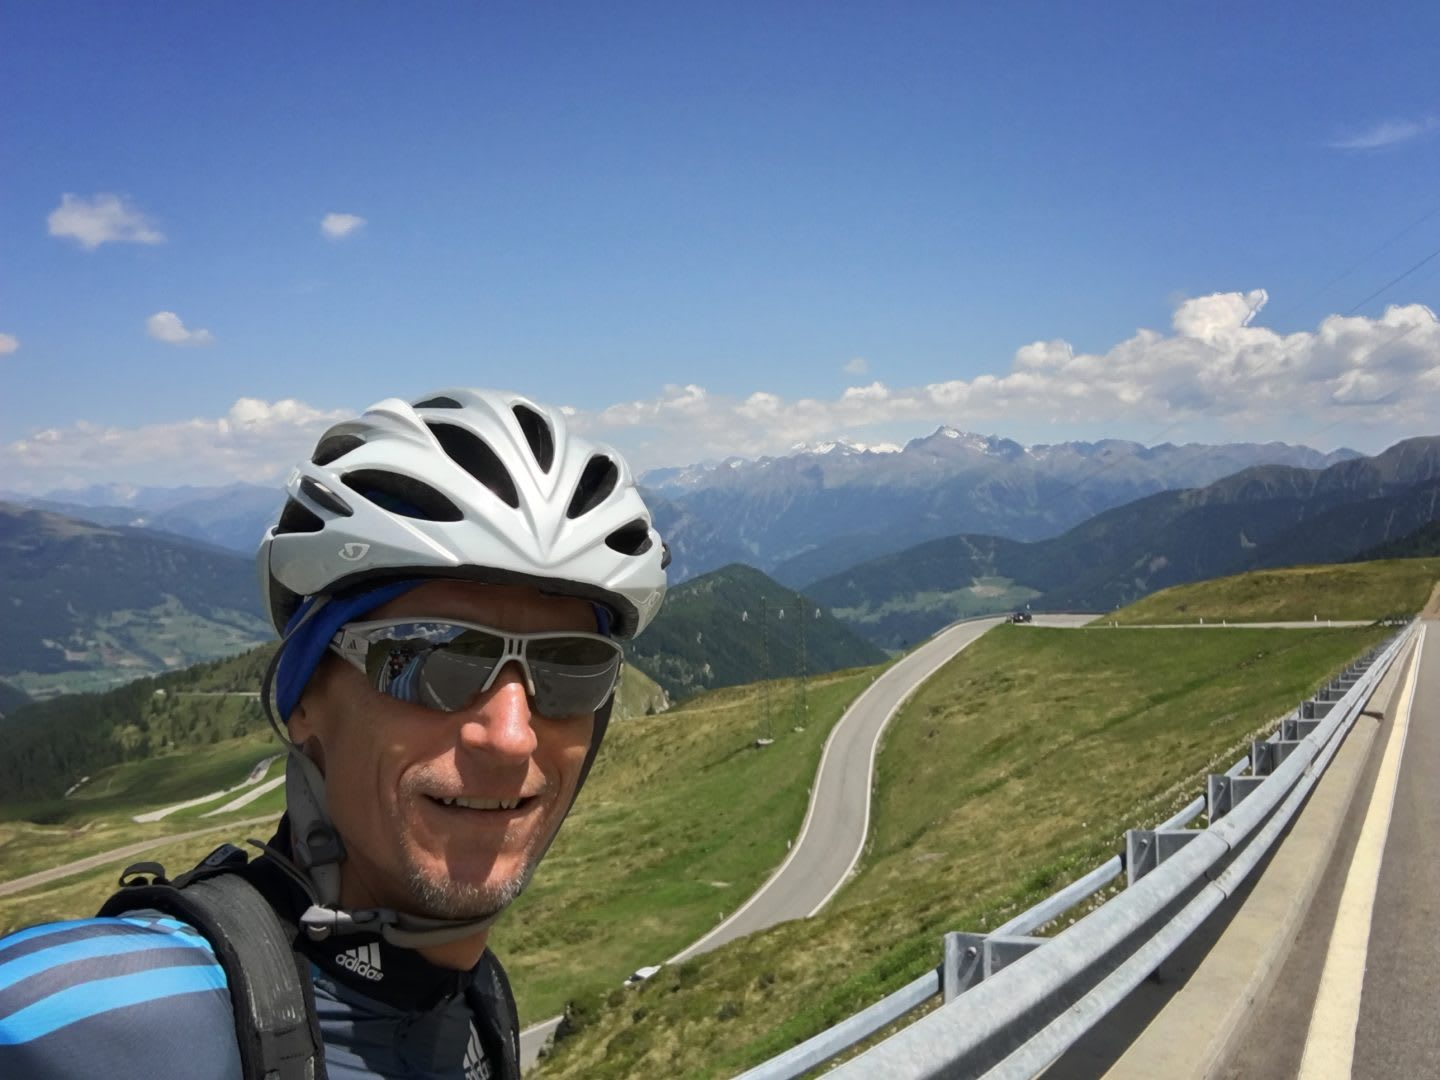 cyclist selfie mountain top road active holidays to unwind